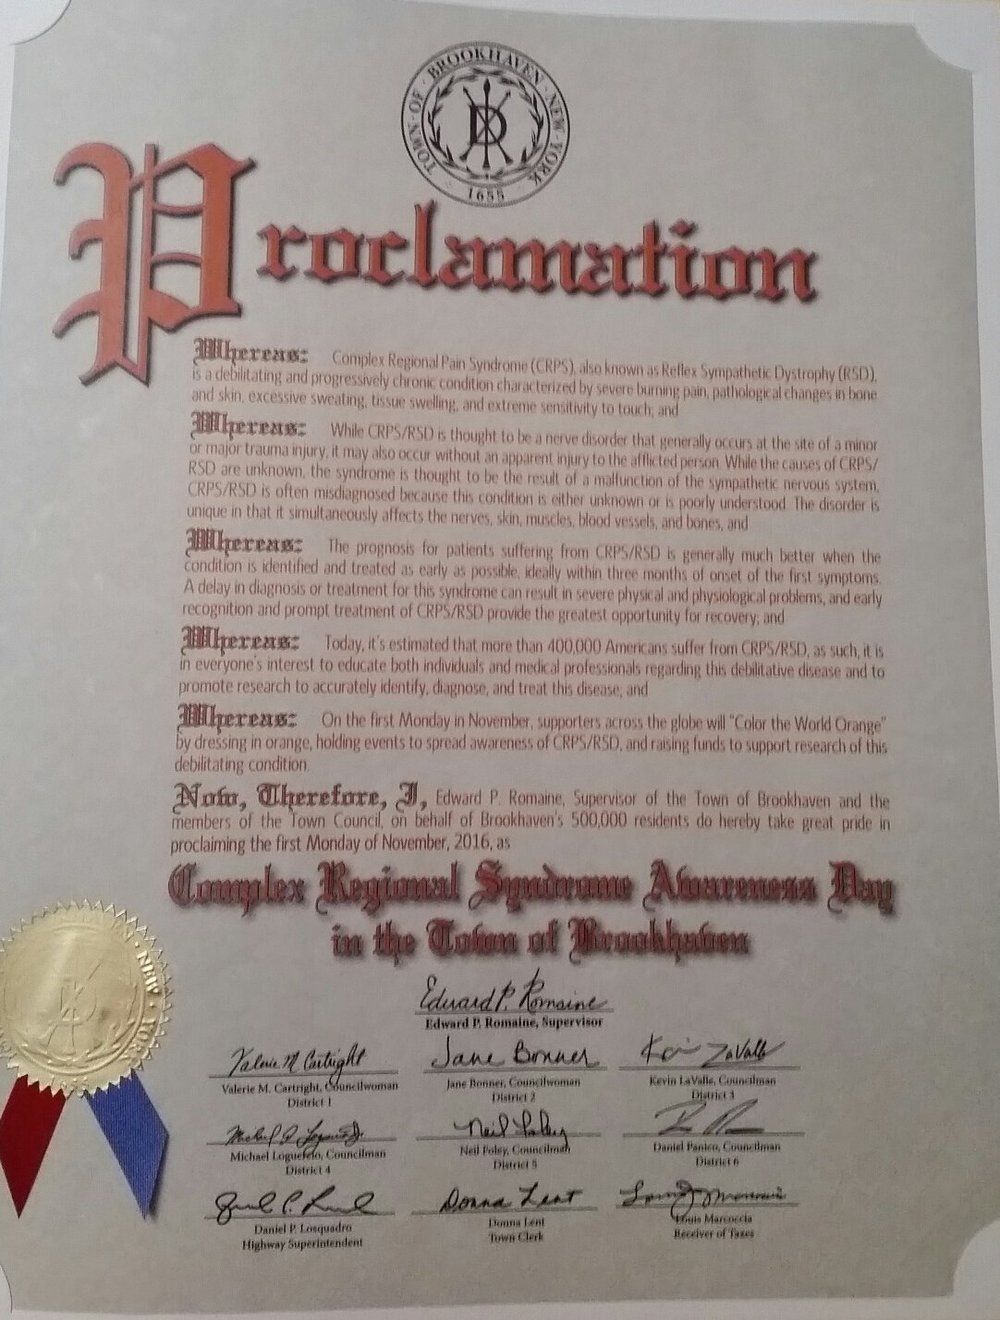 brookhavenproclamation (2).jpg